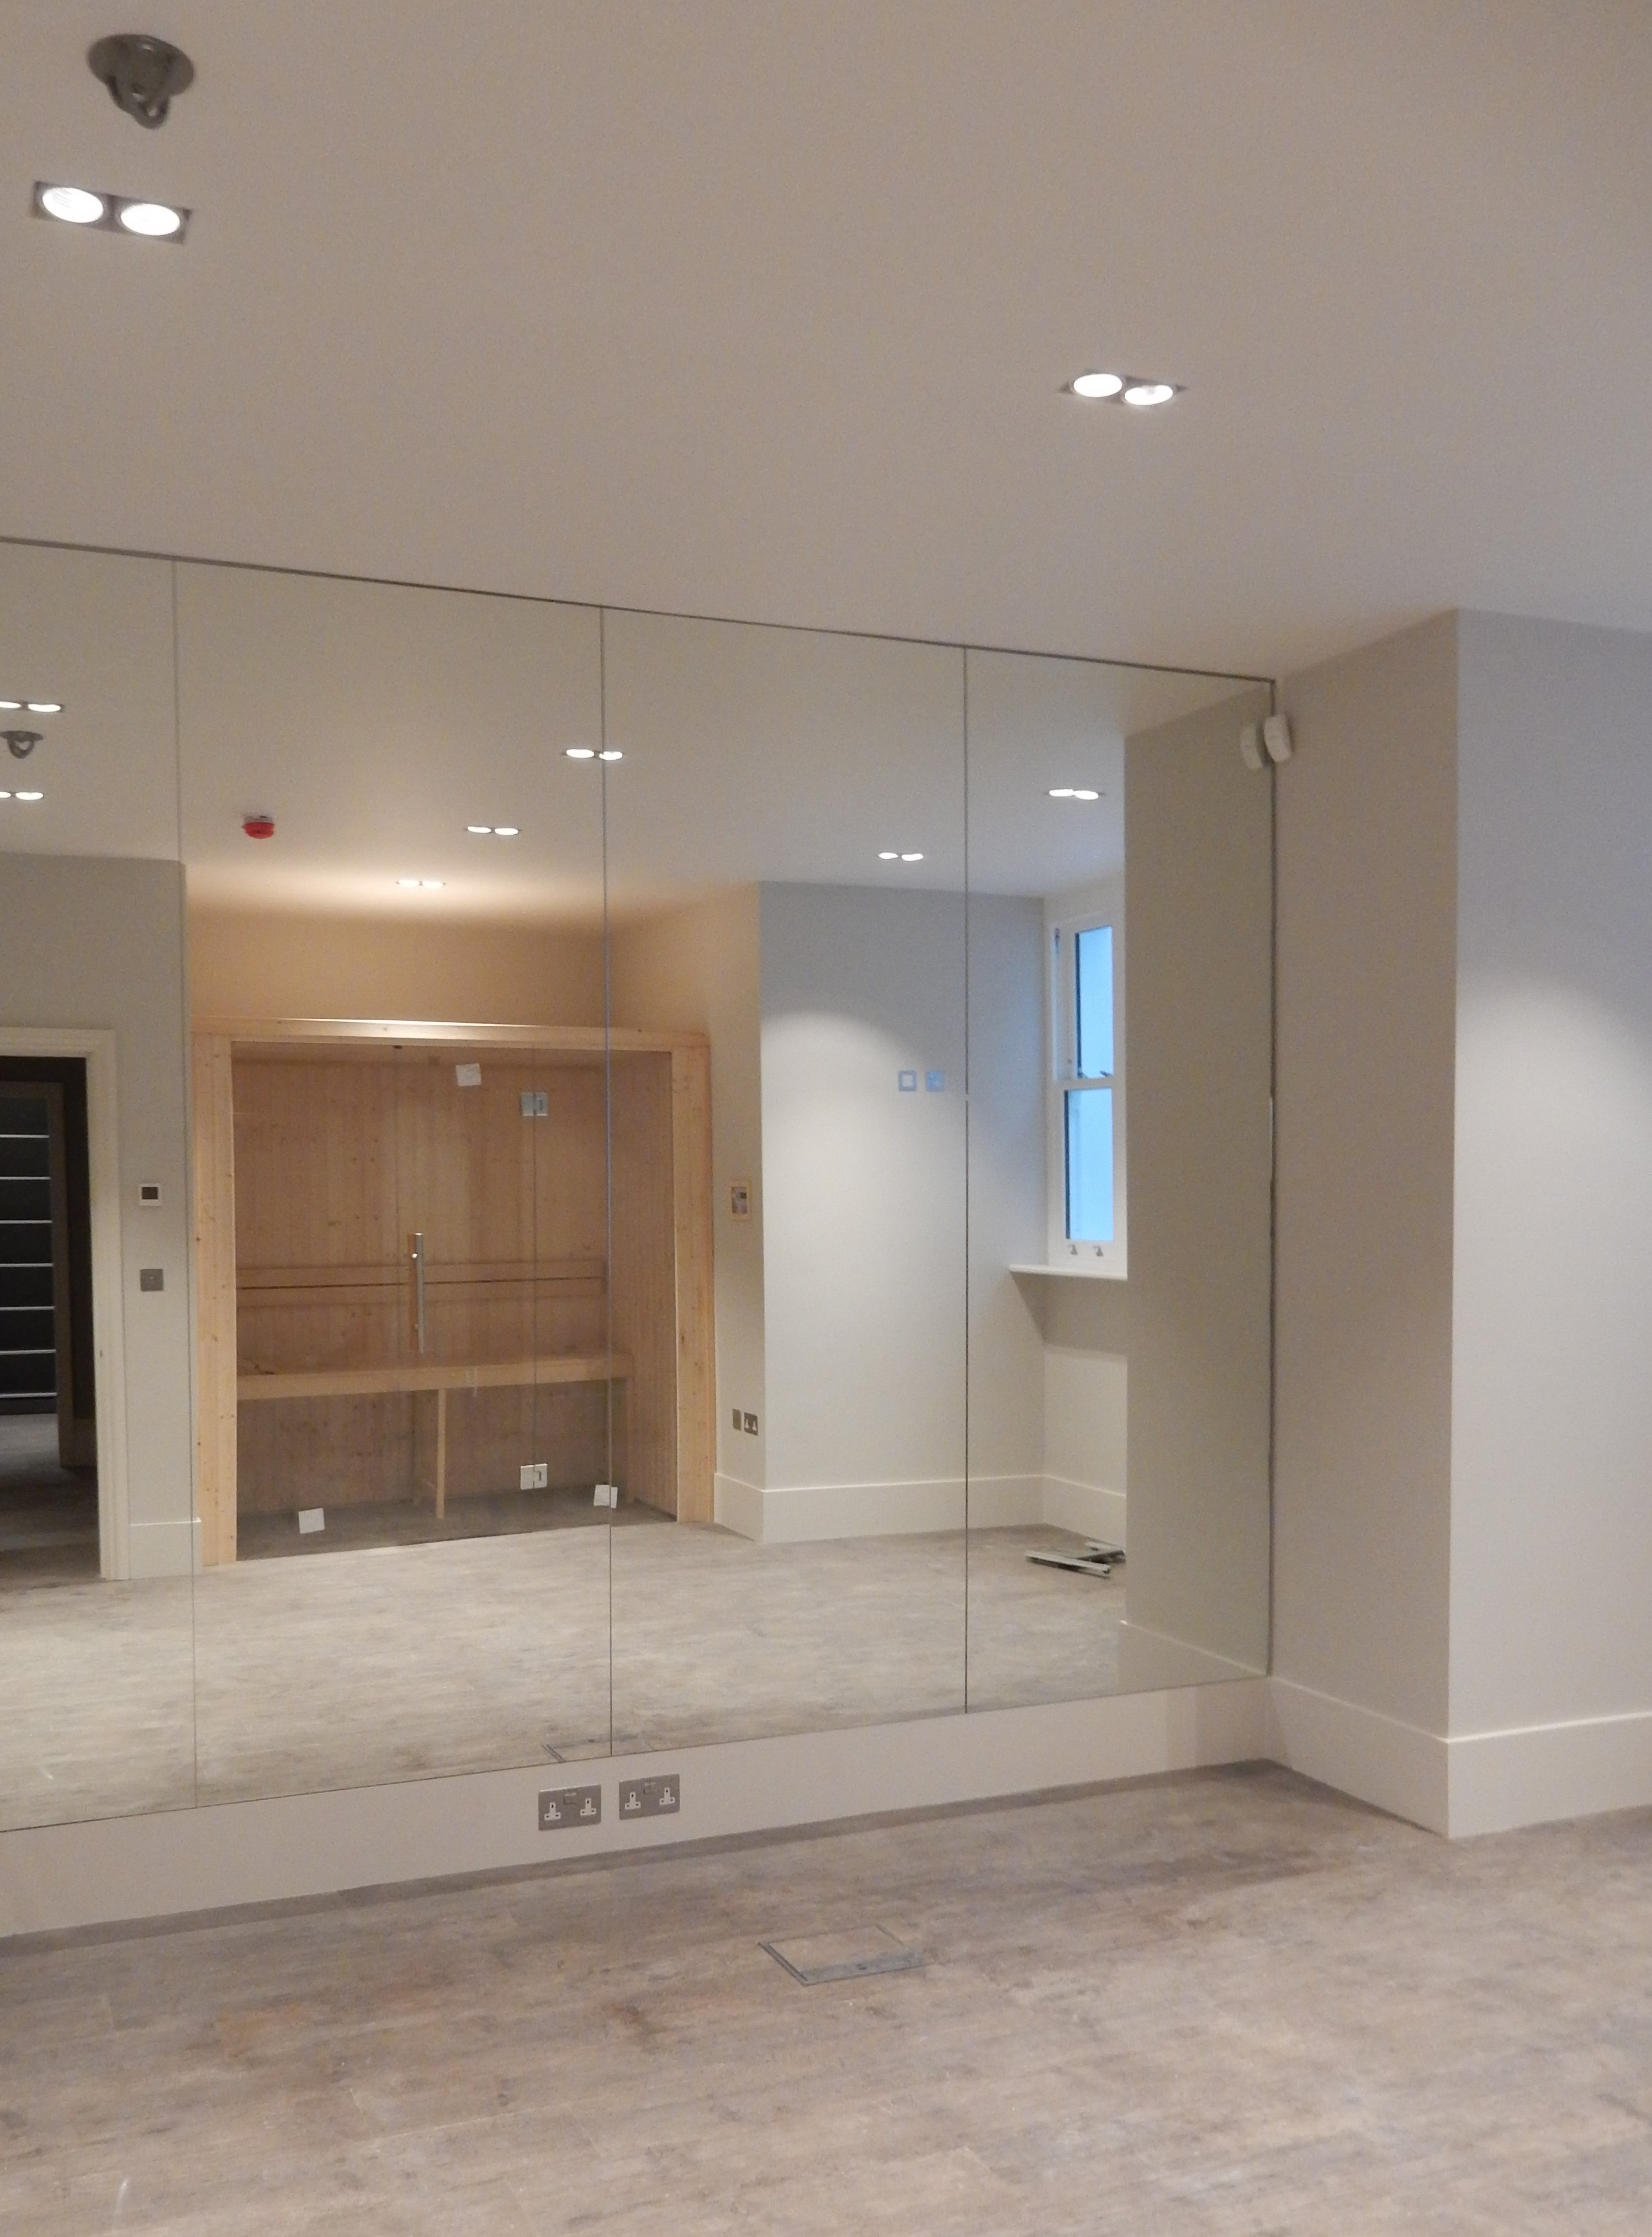 creativemass - basement, extension, internal remodelling, gym, light, London